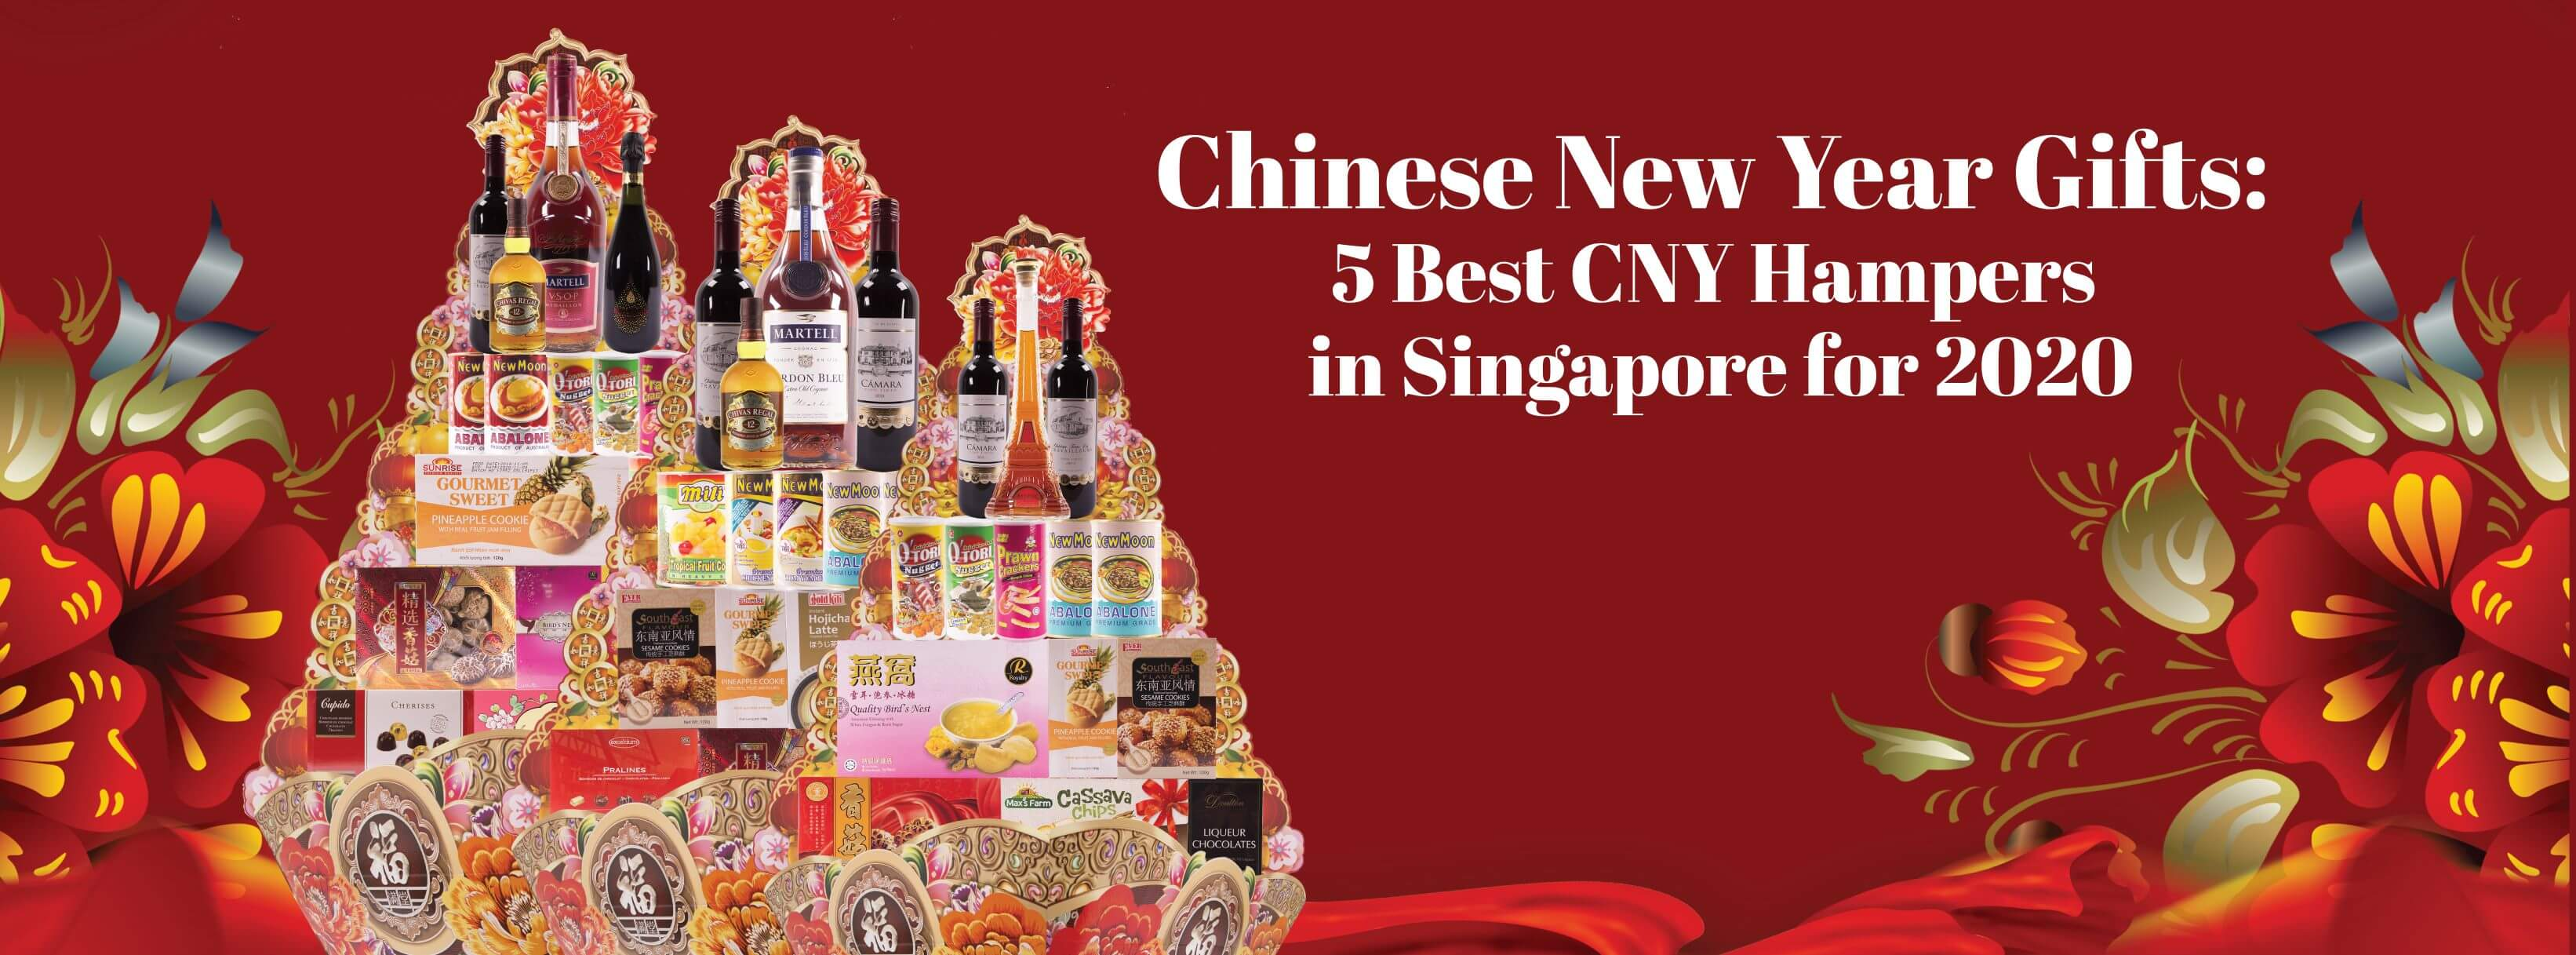 Chinese New Year Gifts: 5 Best CNY Hampers in Singapore for 2020